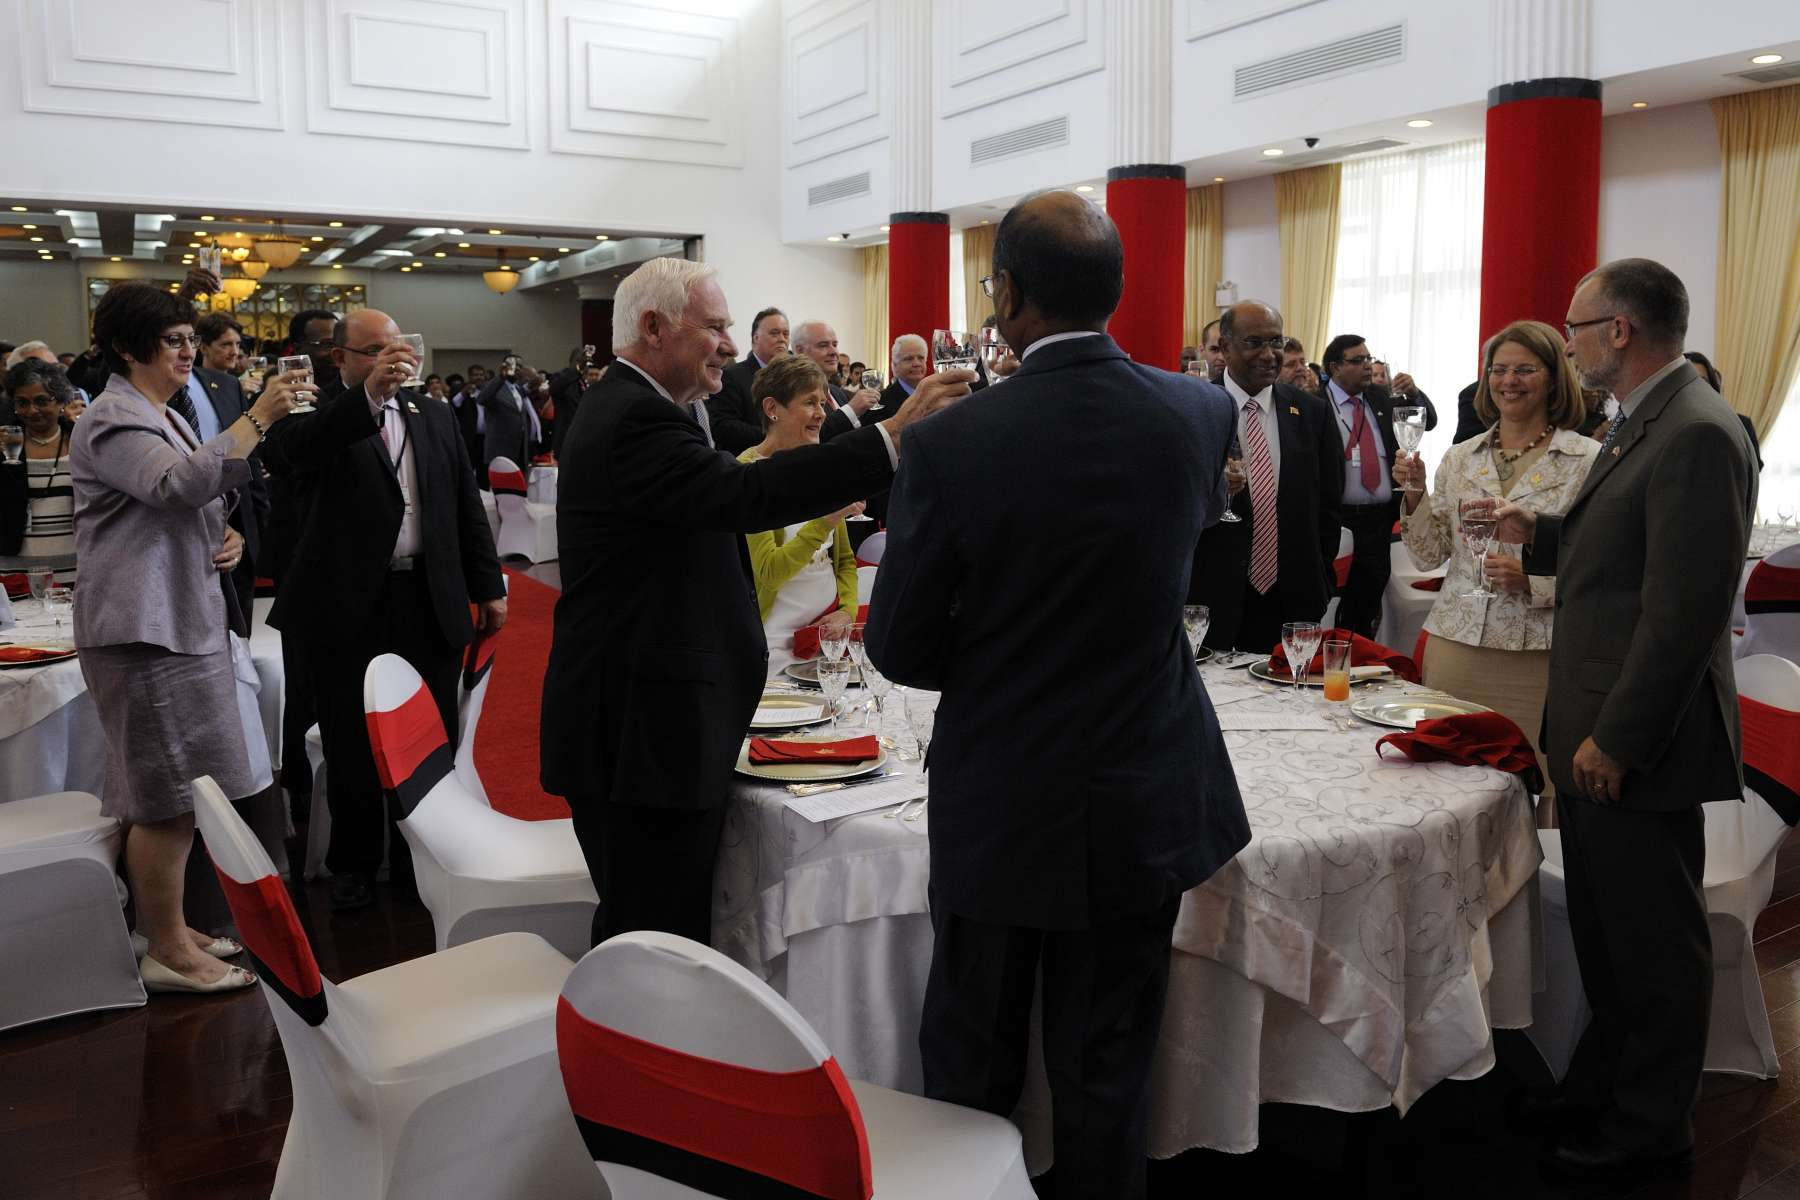 Government officials, civil society, academics and prominent business people were invited to the luncheon.